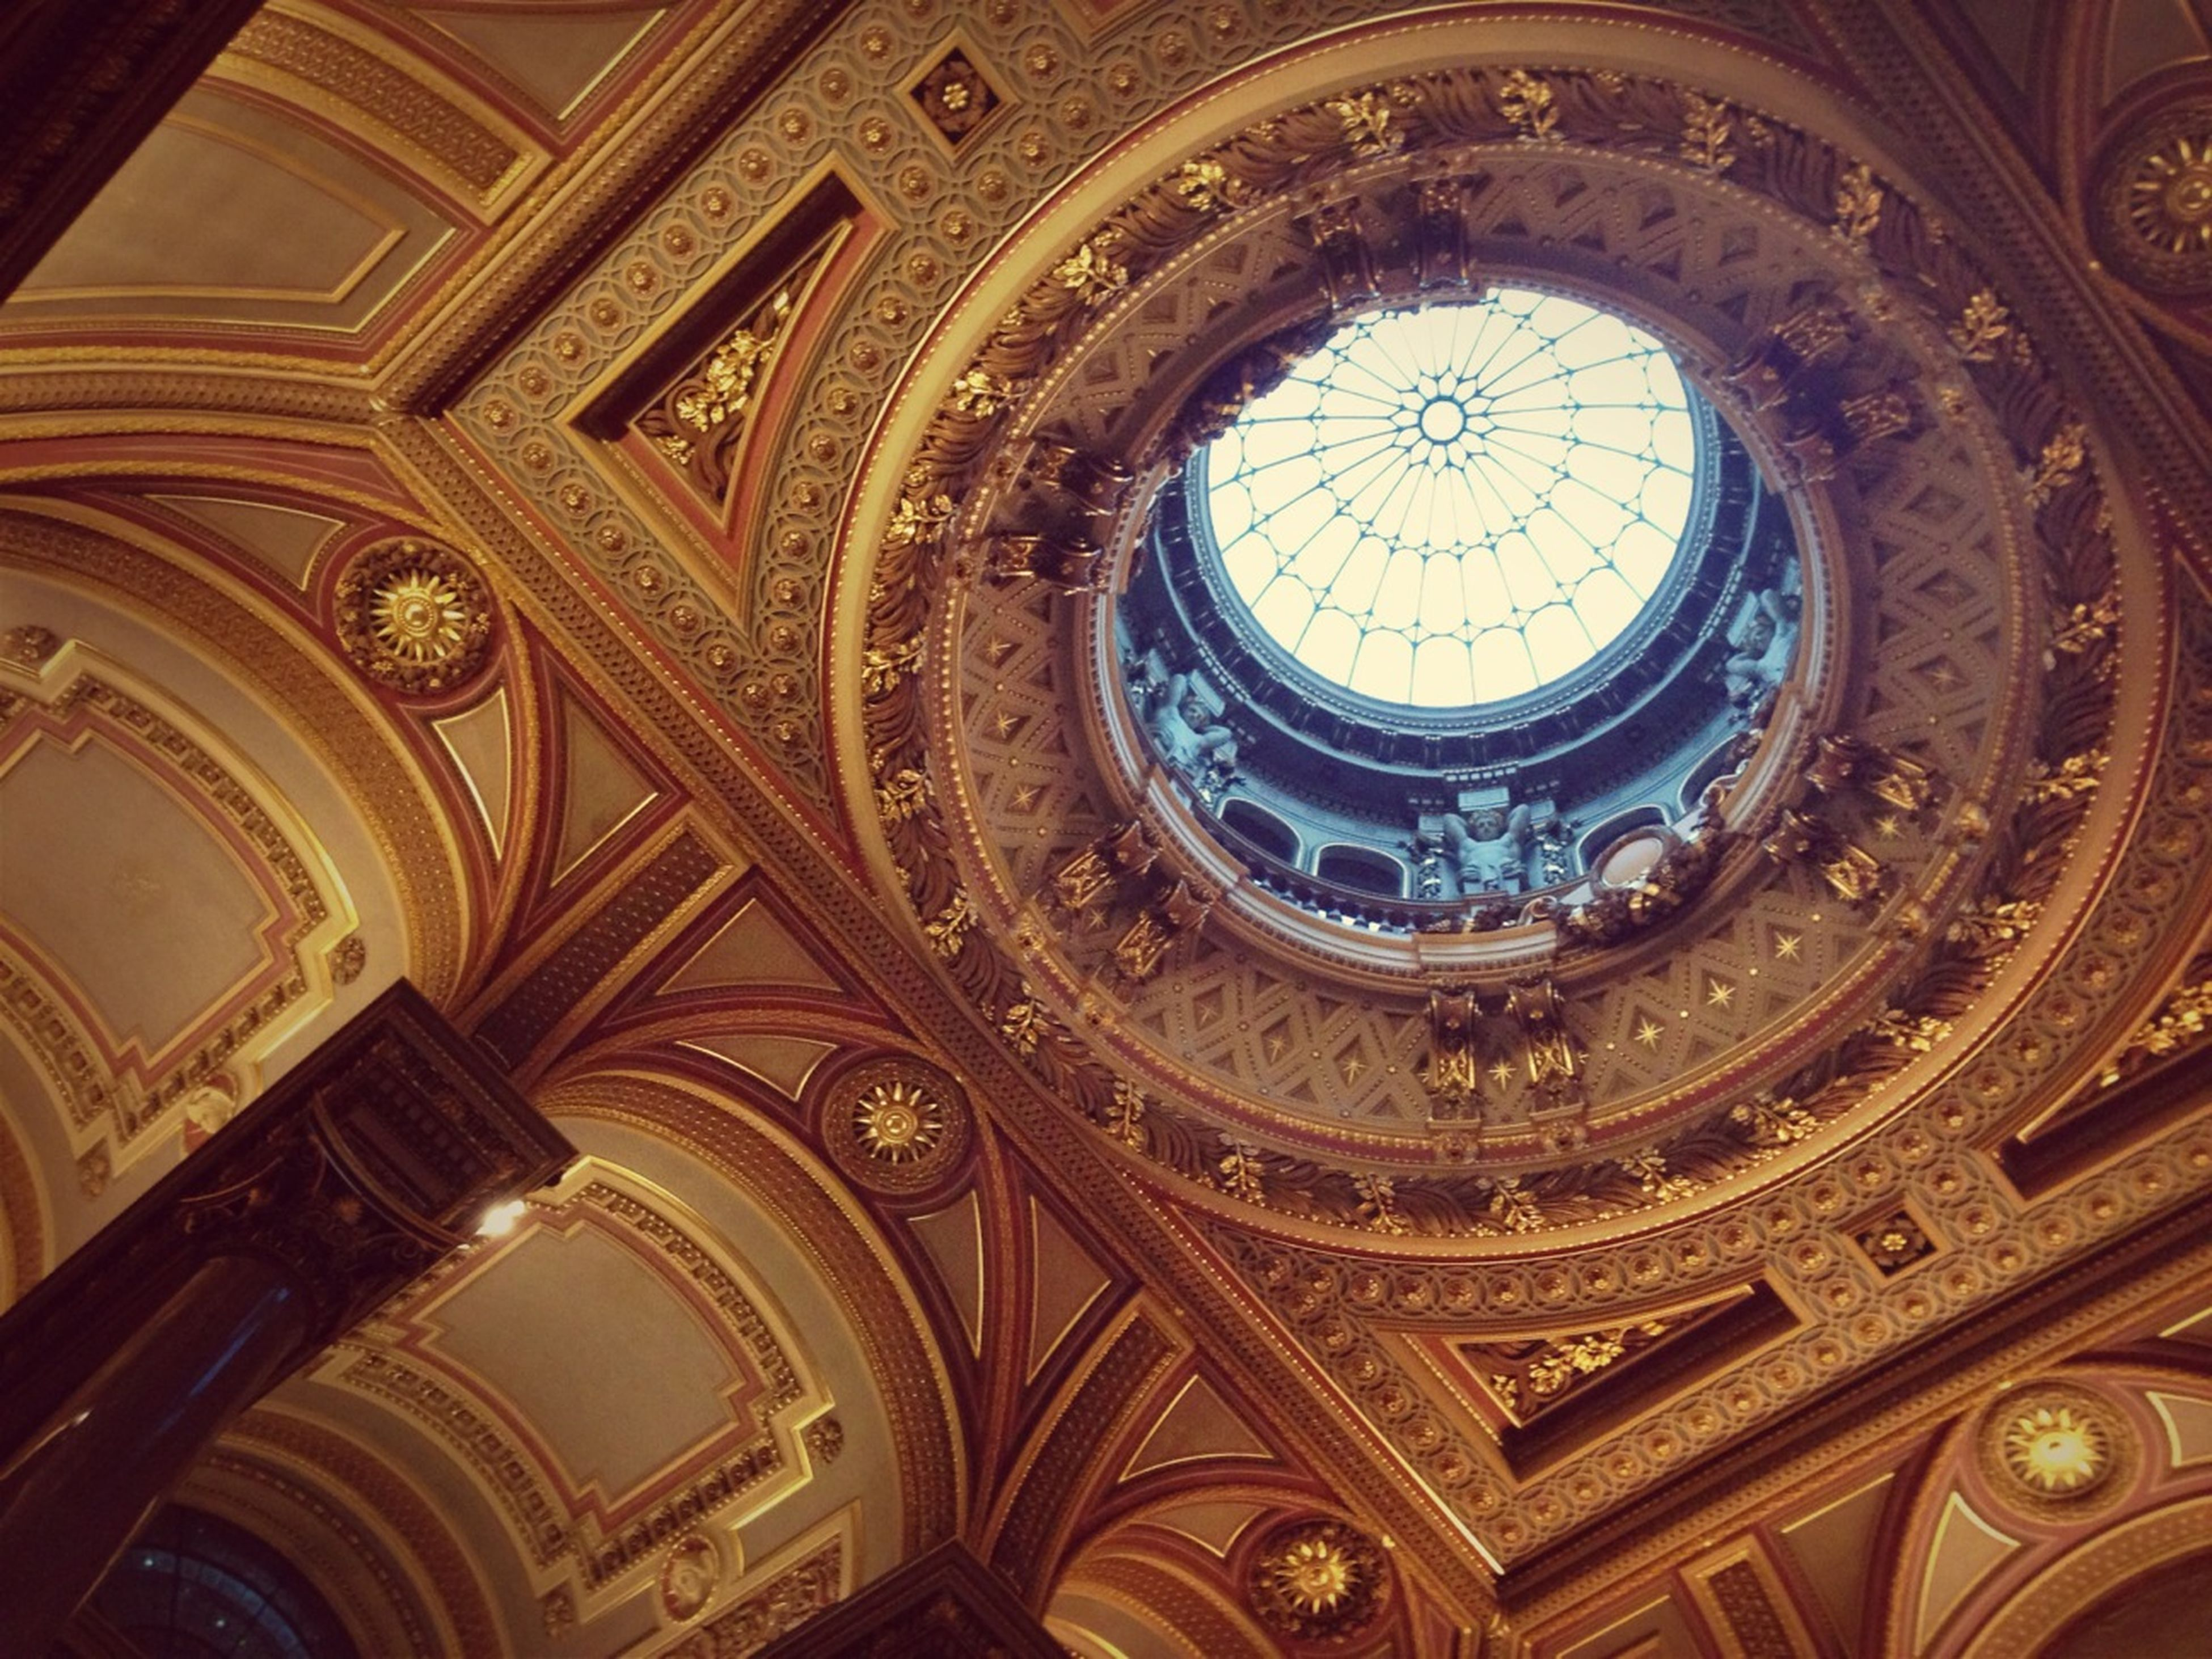 architecture, indoors, built structure, low angle view, ceiling, design, pattern, ornate, architectural feature, famous place, dome, place of worship, history, arch, religion, window, directly below, travel destinations, art and craft, spirituality